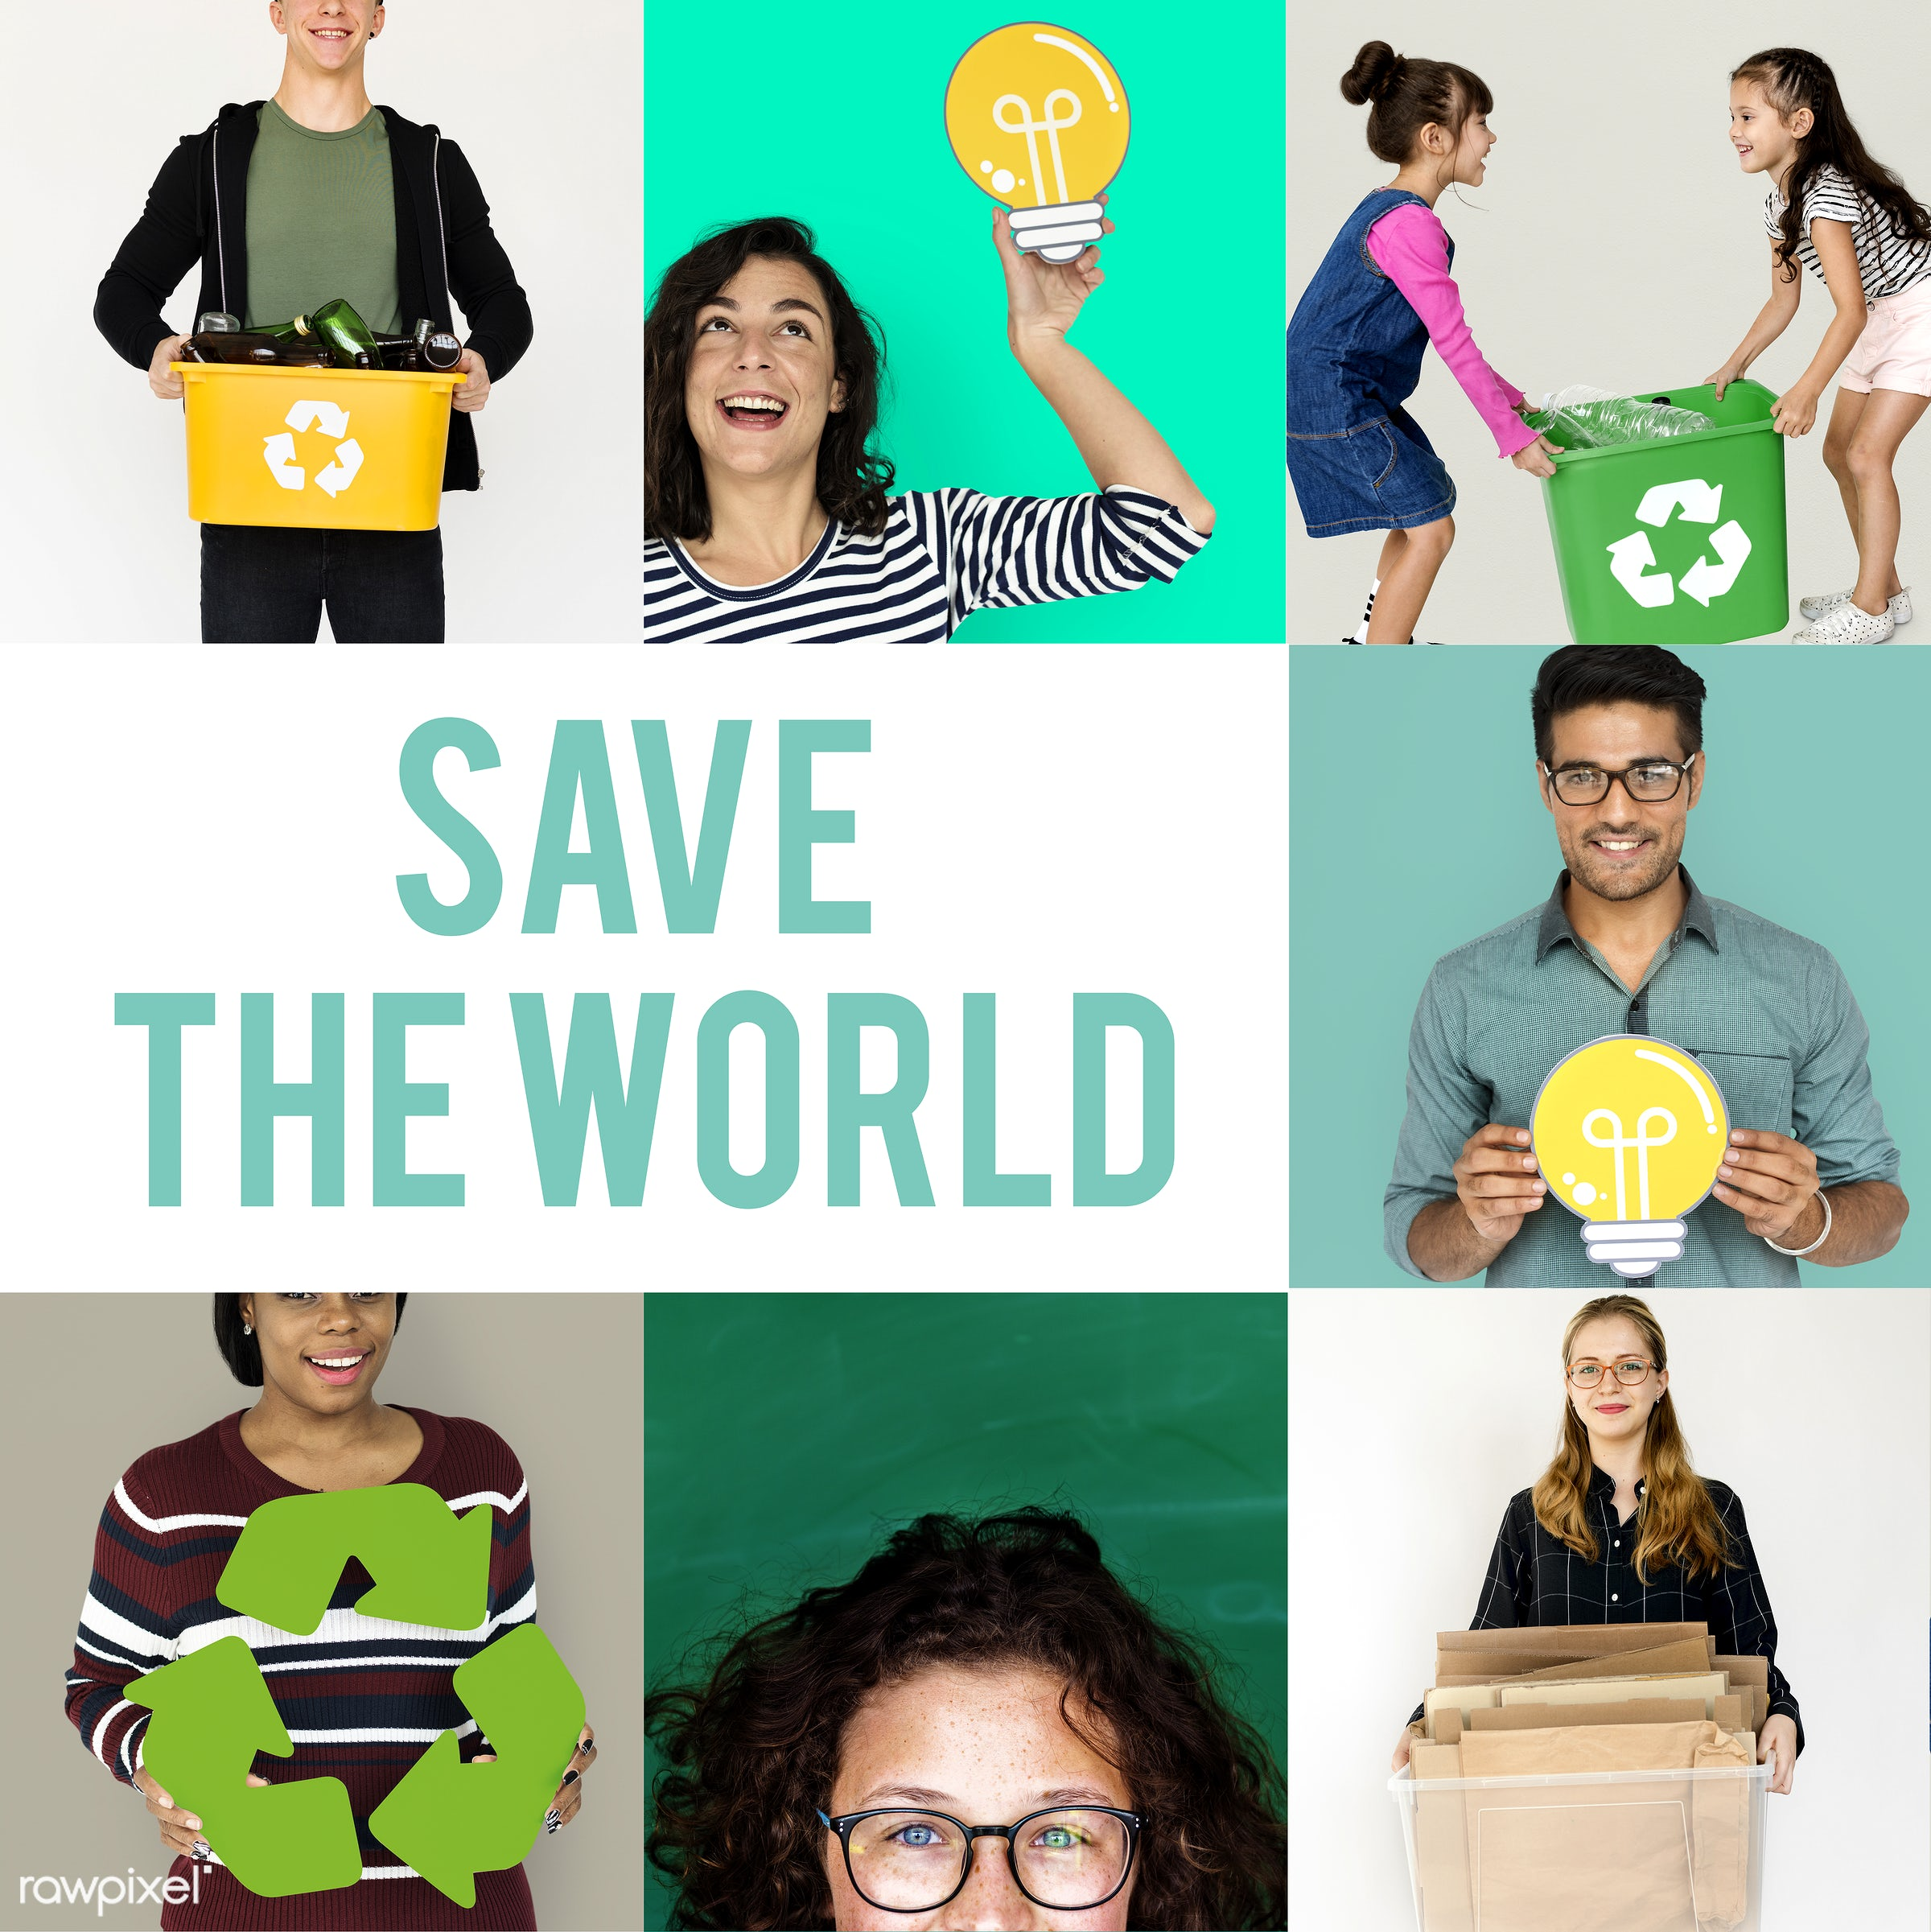 studio, save, diverse, collages, environmental conservation, people, nature, woman, lifestyle, go green, isolated, global,...